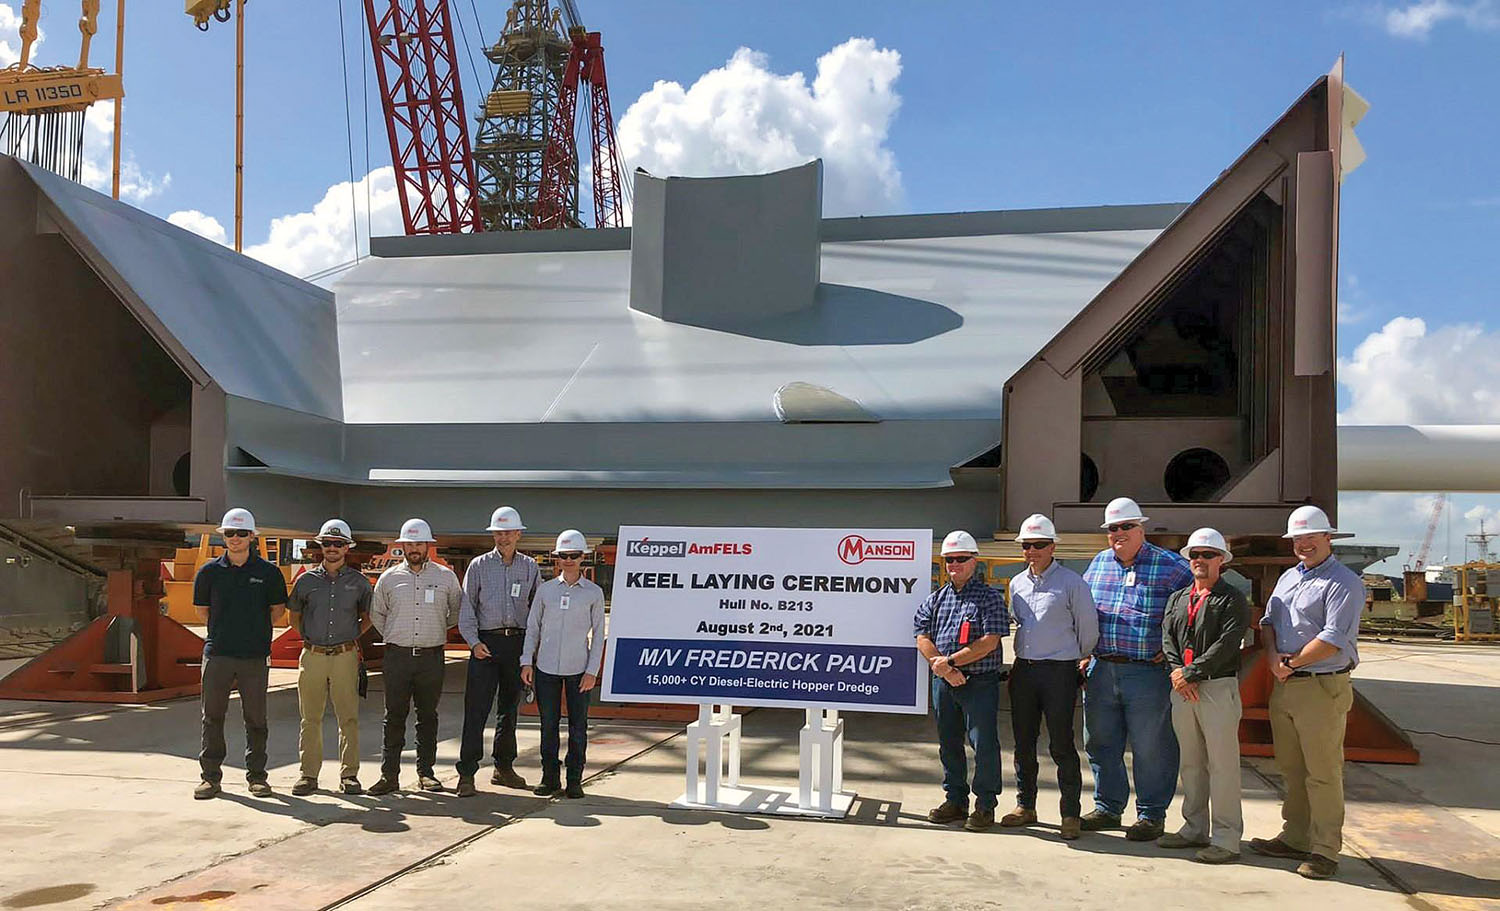 Officials from Manson Construction Company and Keppel AmFELS commemorate the keel-laying for the Frederick Paup.